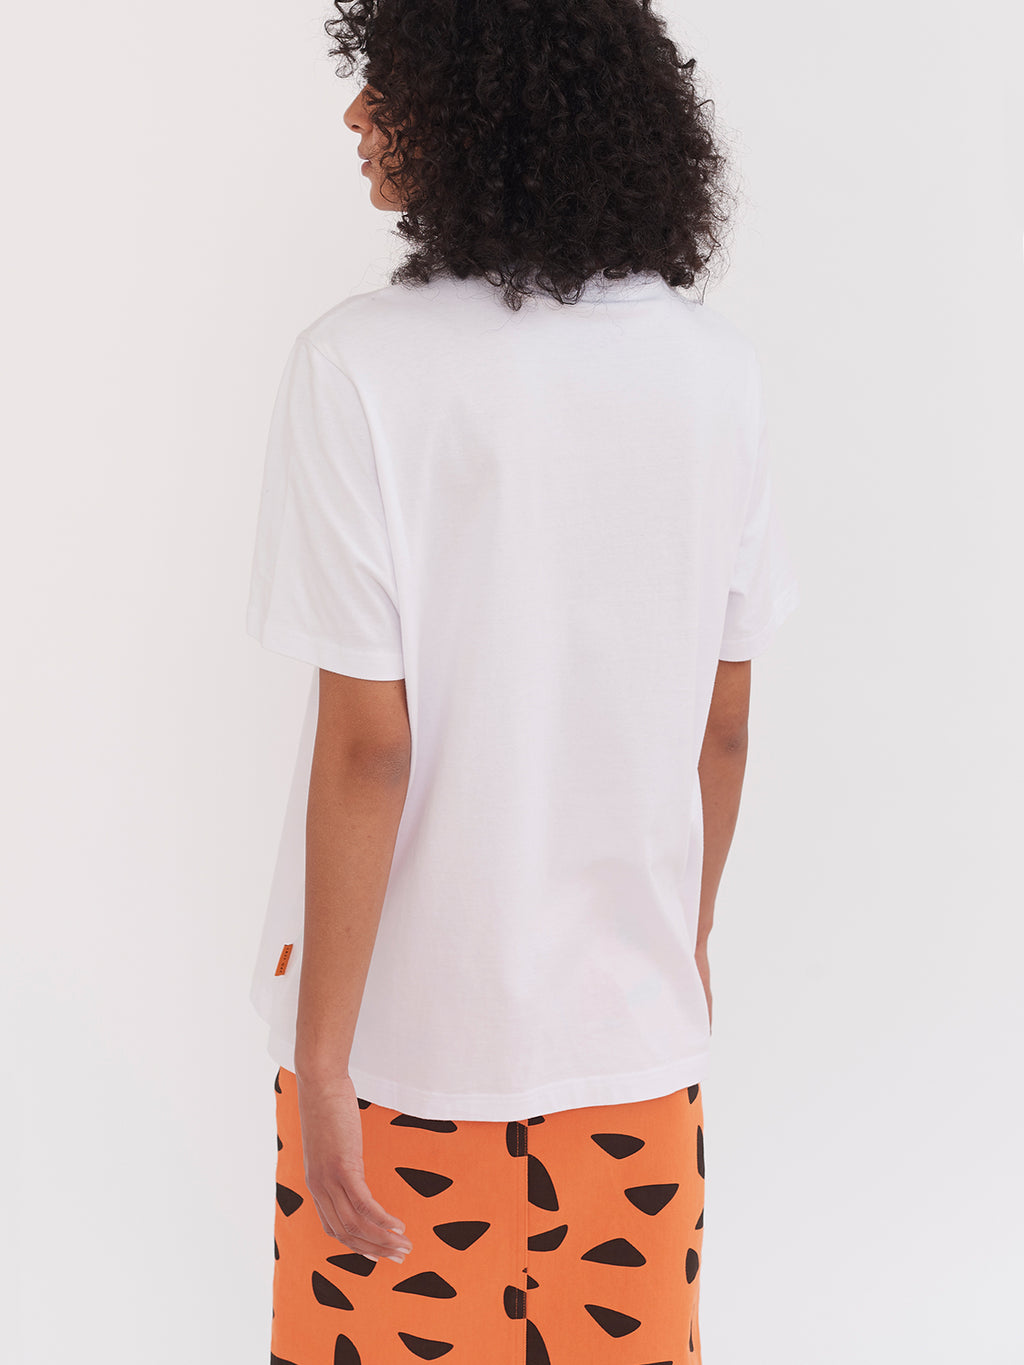 Lazy Oaf x The Flintstones Stone Age T-Shirt